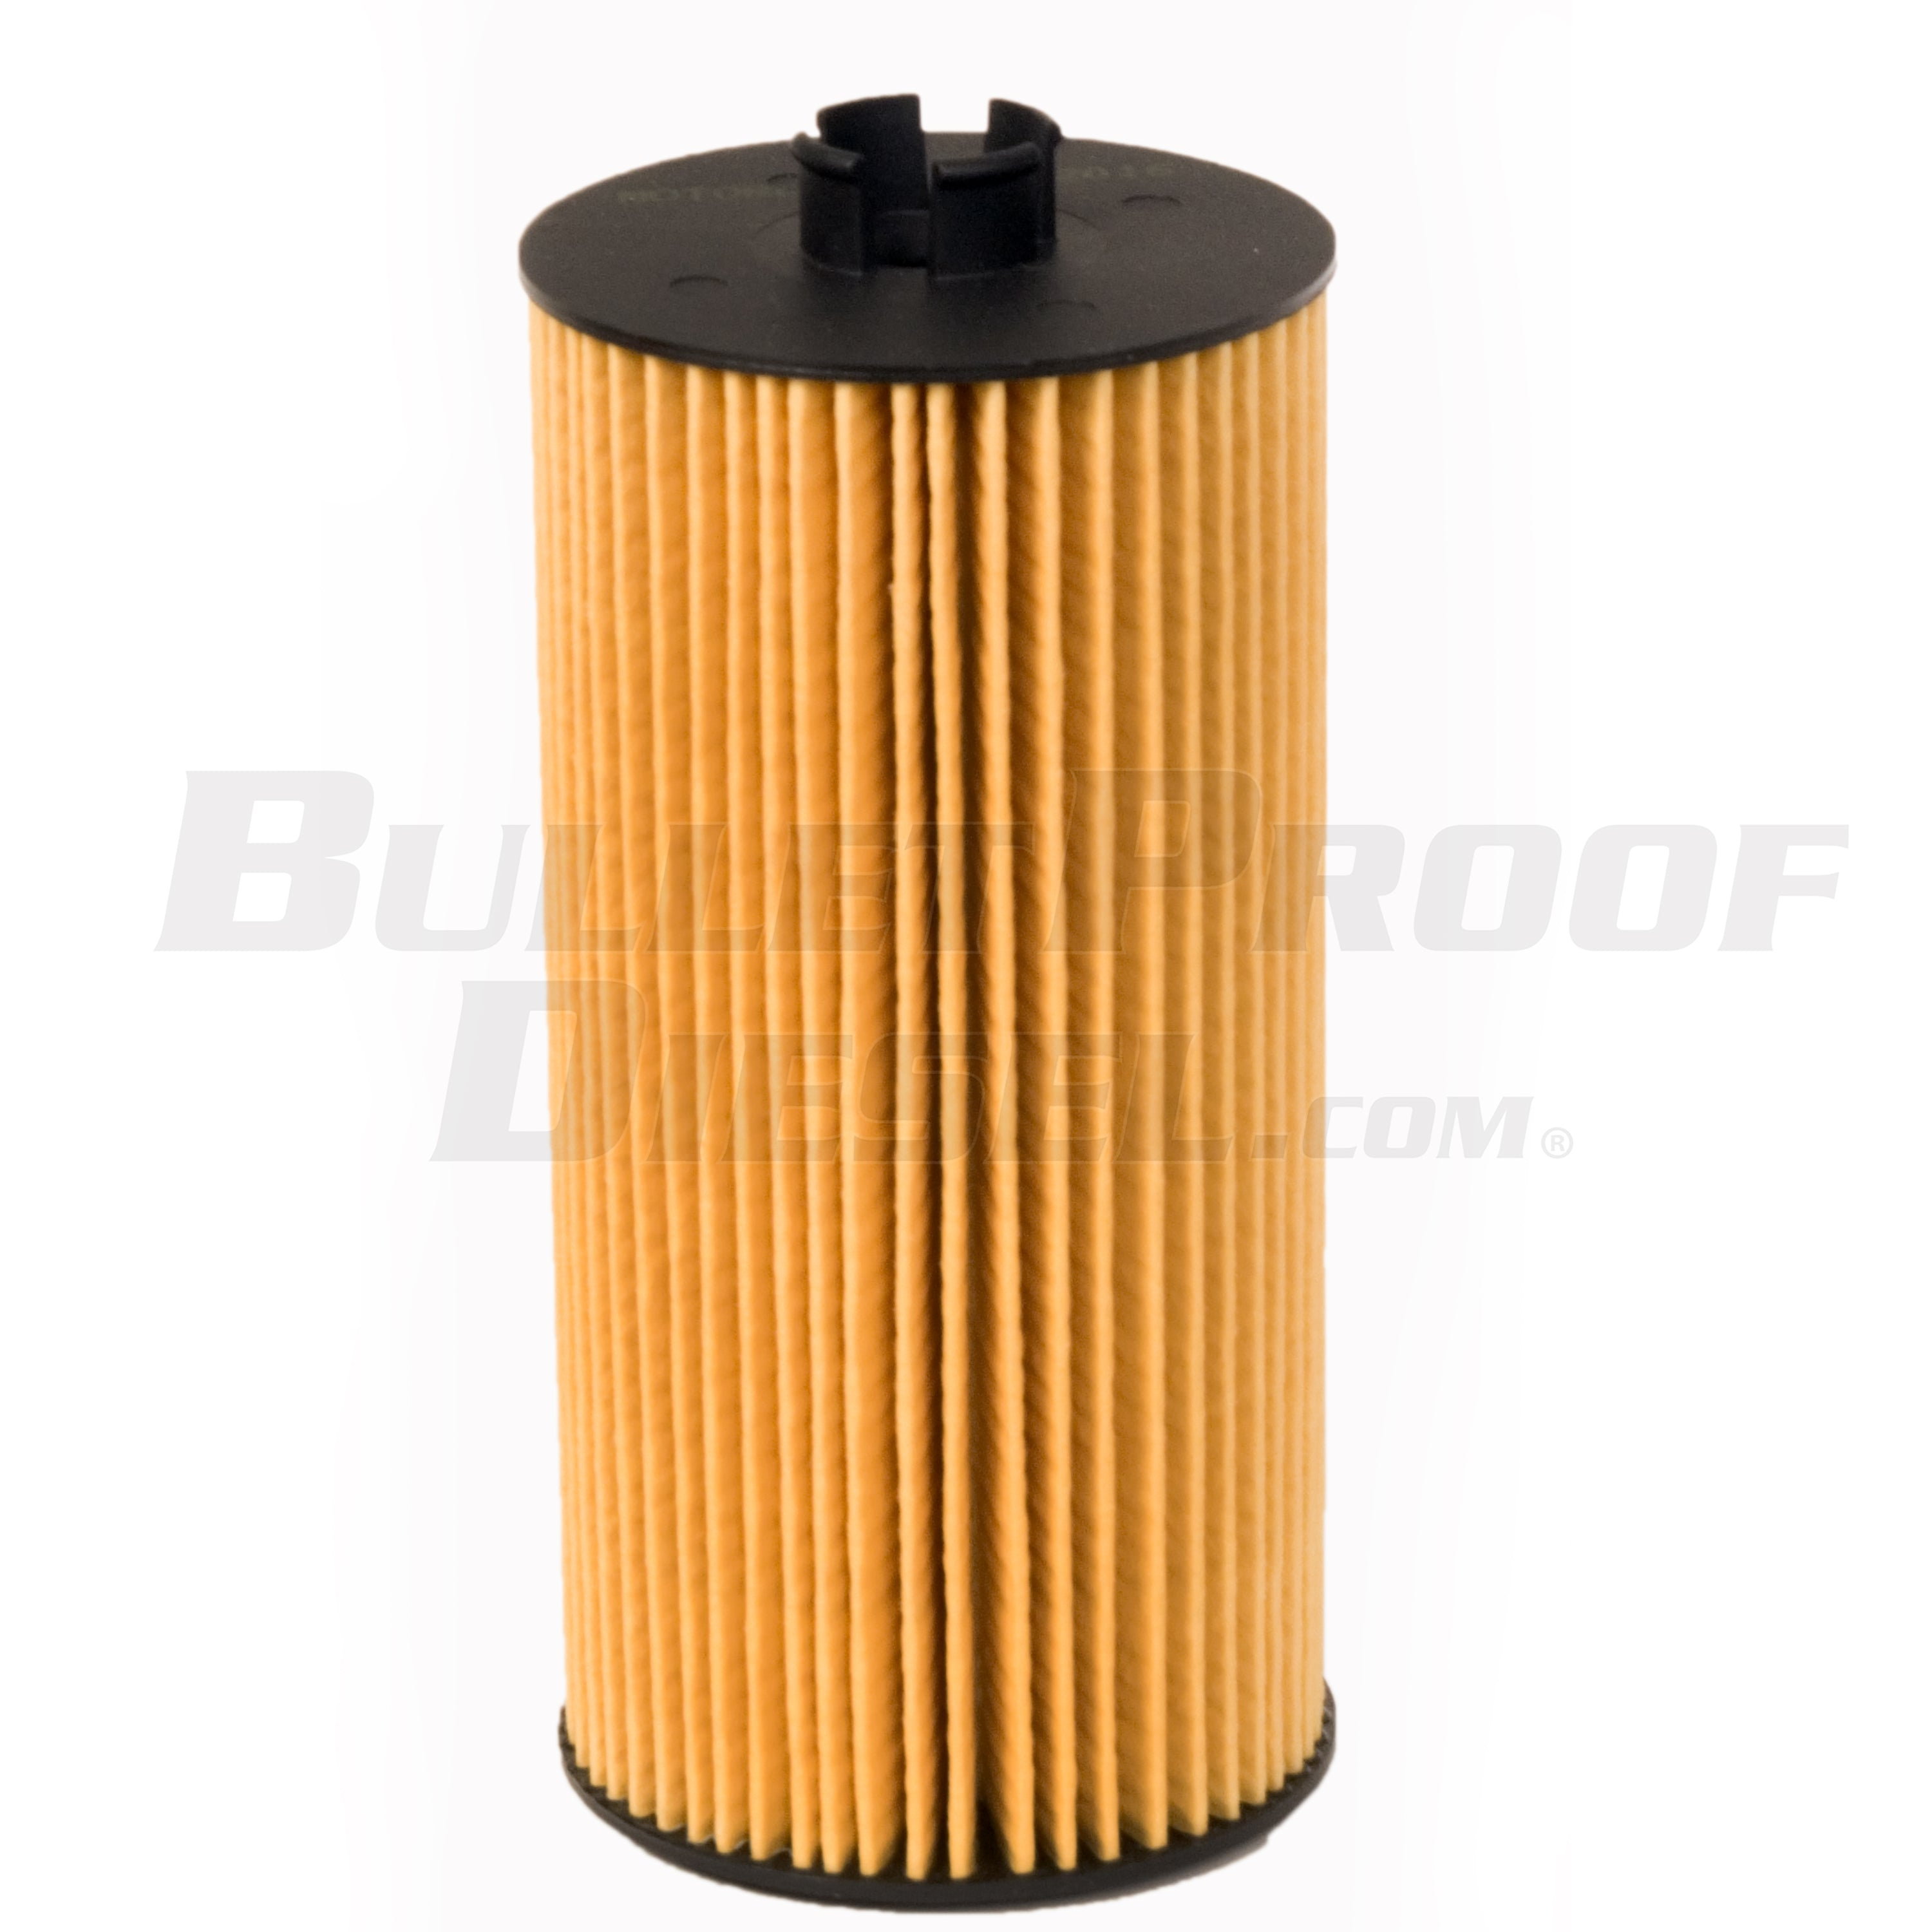 2005-2006 6.0L F-Series, Professional Package - OEM Oil Filter